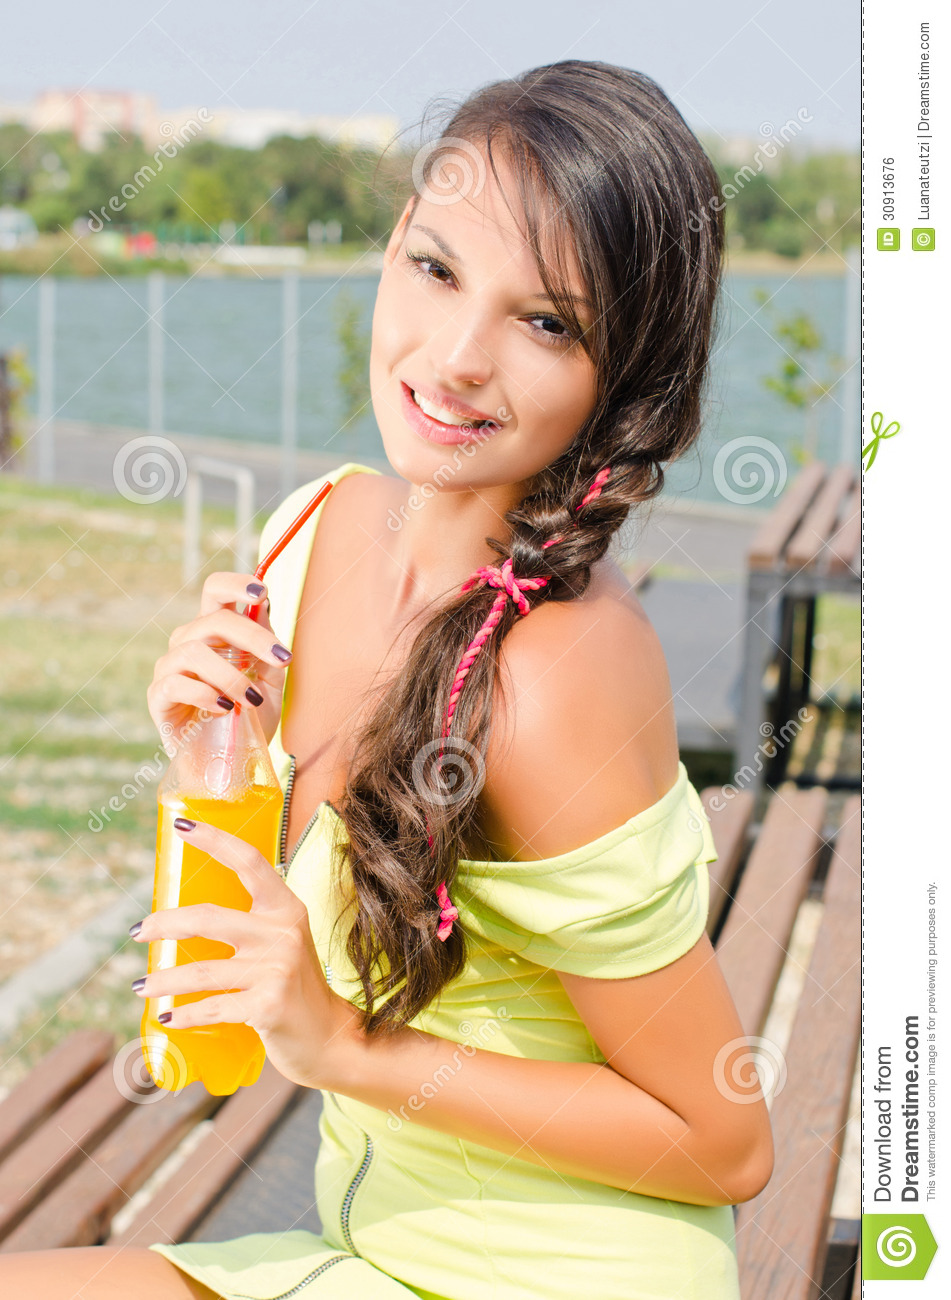 Favim in addition Beautiful Bru te Girl Holding Plastic Bottle Orange Juice Modern Drinking Hot Day Summer Outdoors besides E A Edit together with Home Kitchen Blender together with Frasier Skyline. on summer make up clipart